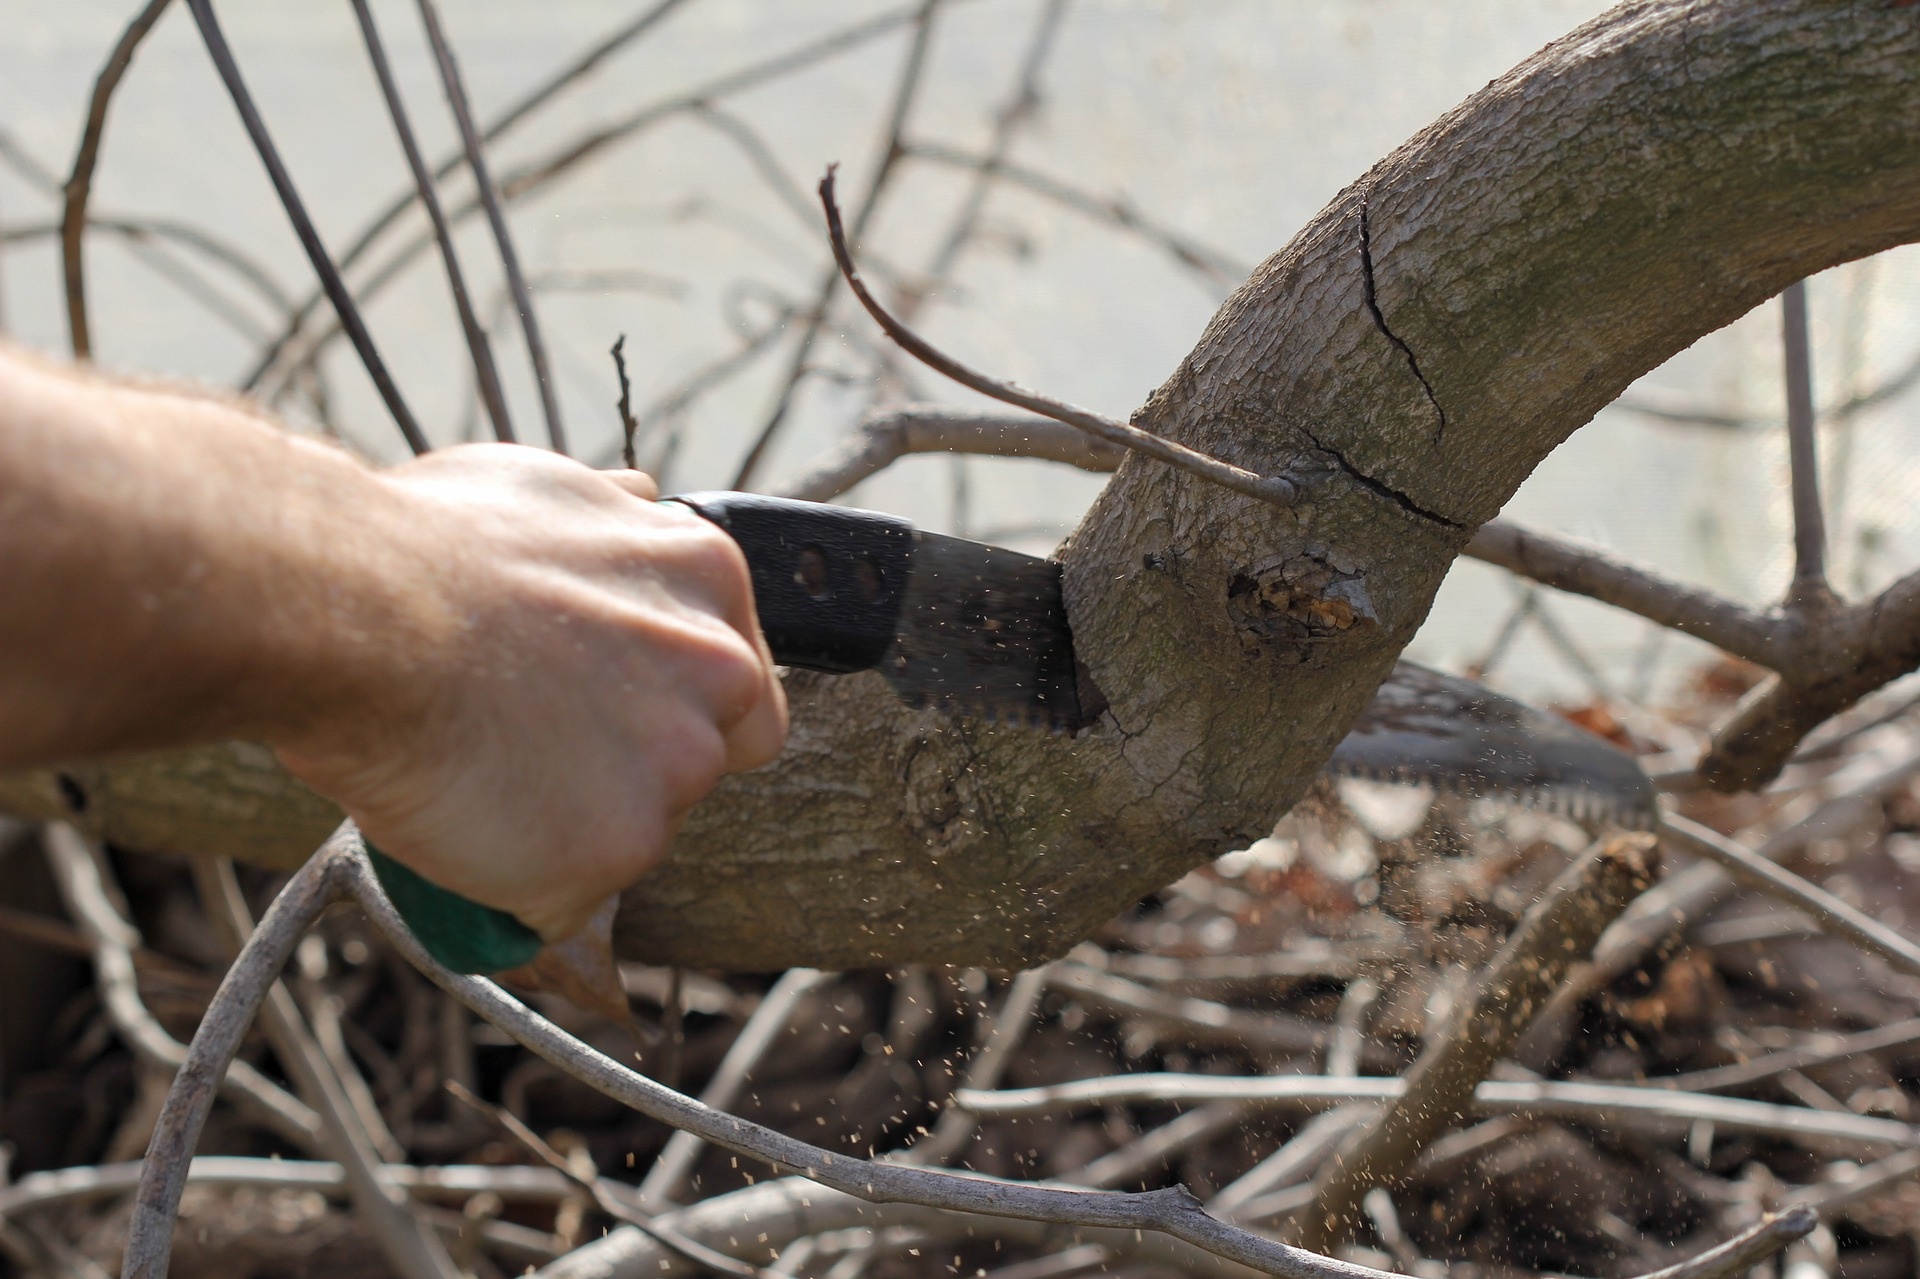 Trimming widespread branches of an apple tree.